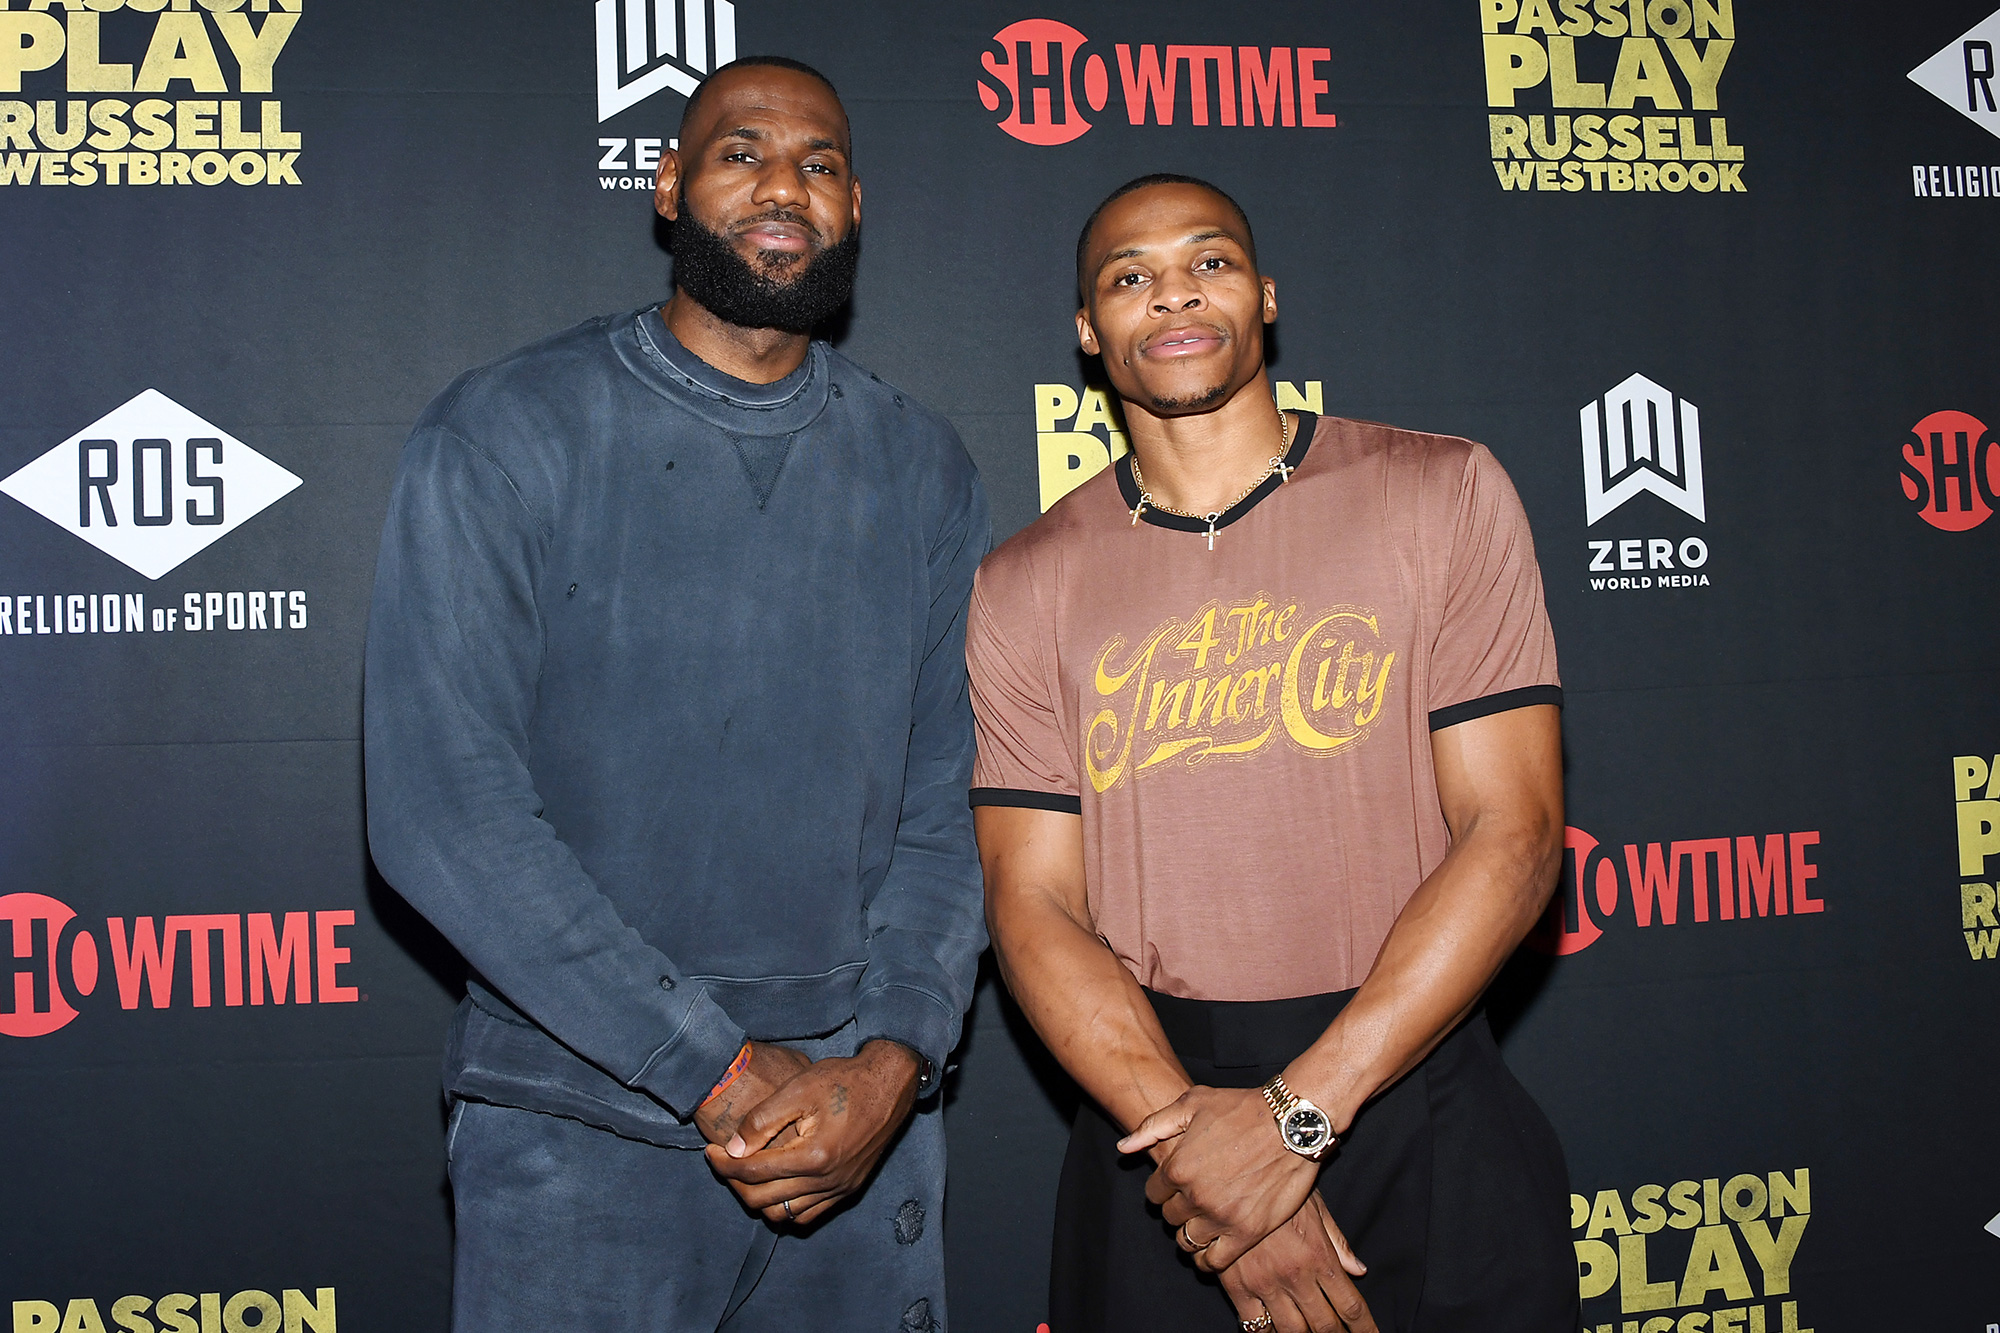 """LeBron James and Russell Westbrook attend """"Passion Play: Russell Westbrook"""" and Religion of Sports Documentary Premiere at iPic Theaters on October 11, 2021 in Los Angeles, California."""